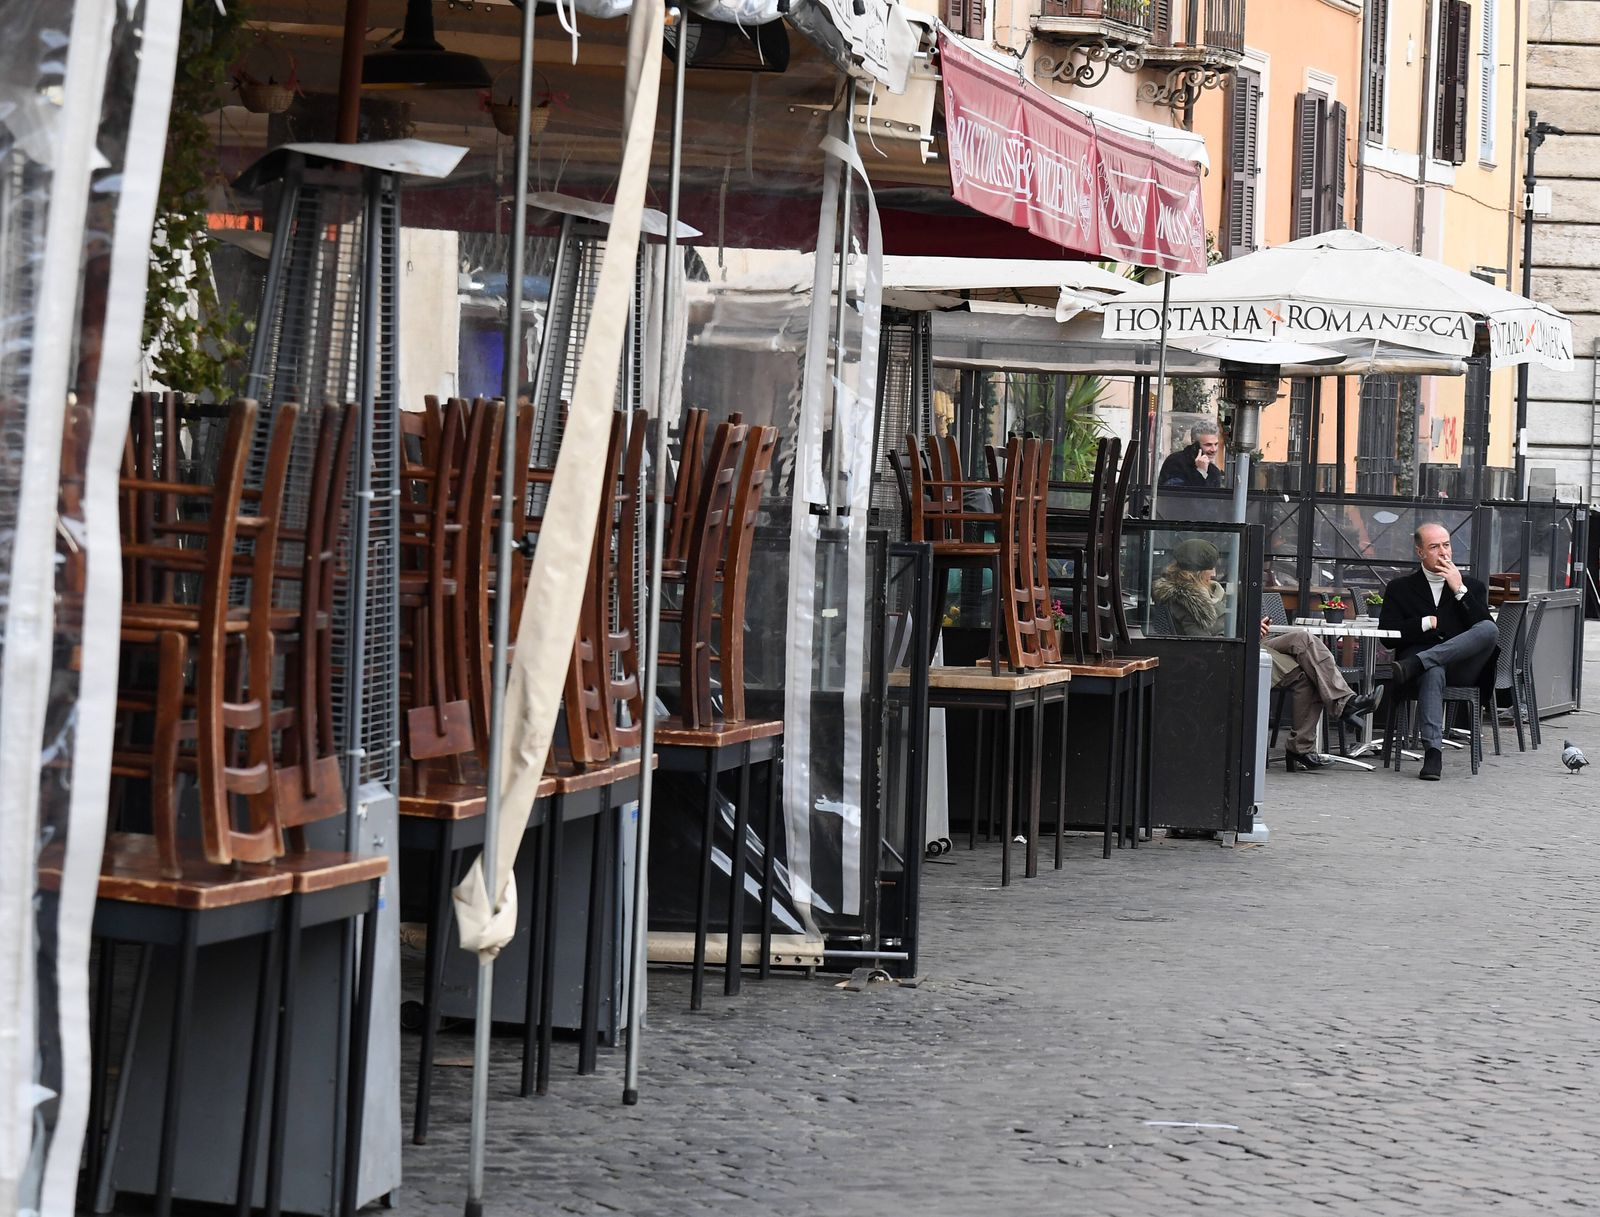 (200310) -- ROME, March 10, 2020 (Xinhua) -- Photo taken on March 10, 2020 shows a restaurant closed ahead of schedule d